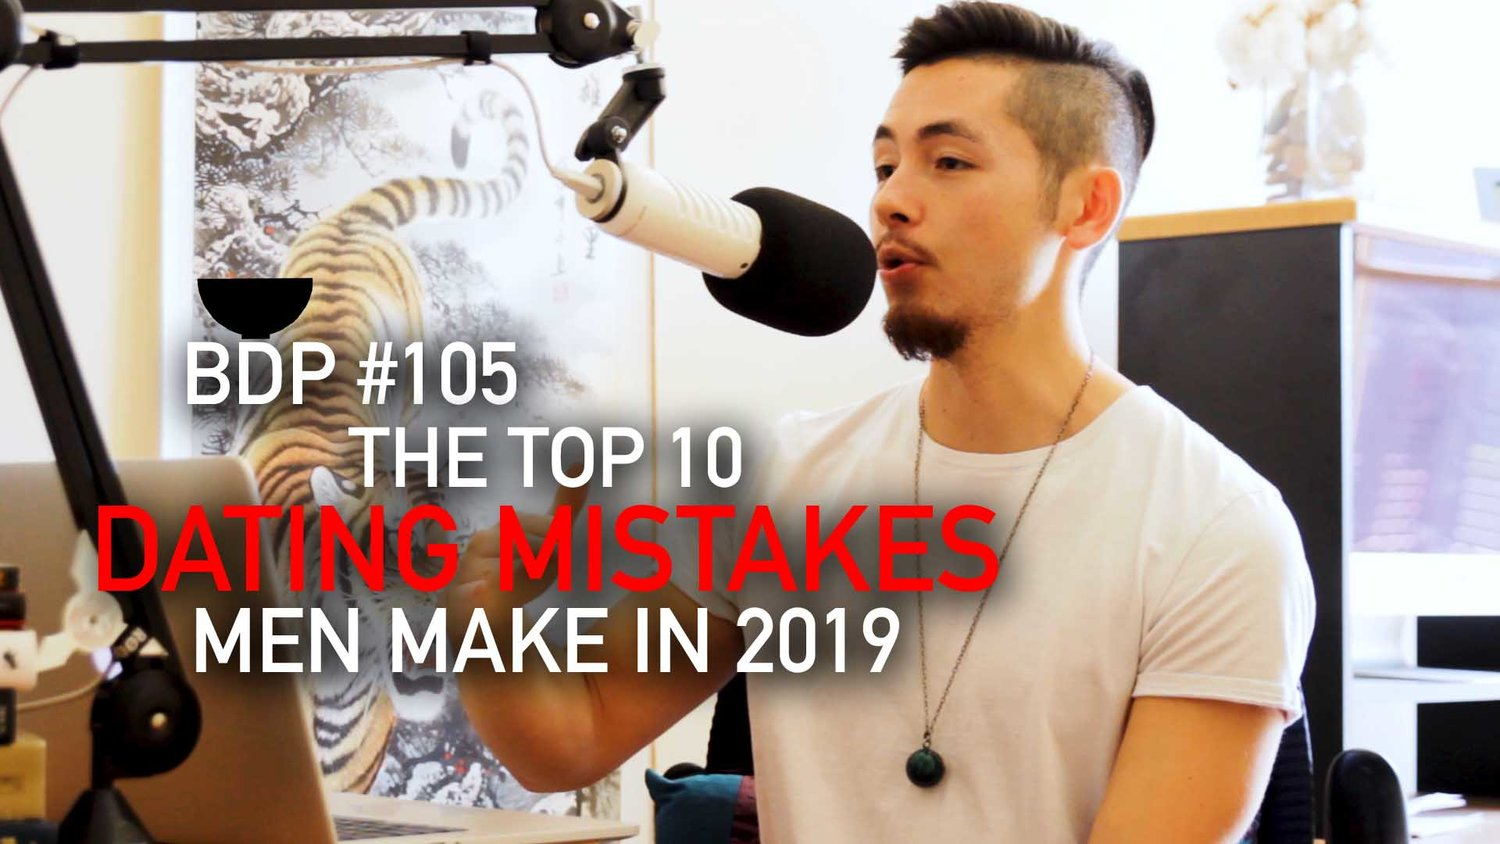 #105 - The Top 10 Dating Mistakes Men Make In 2019